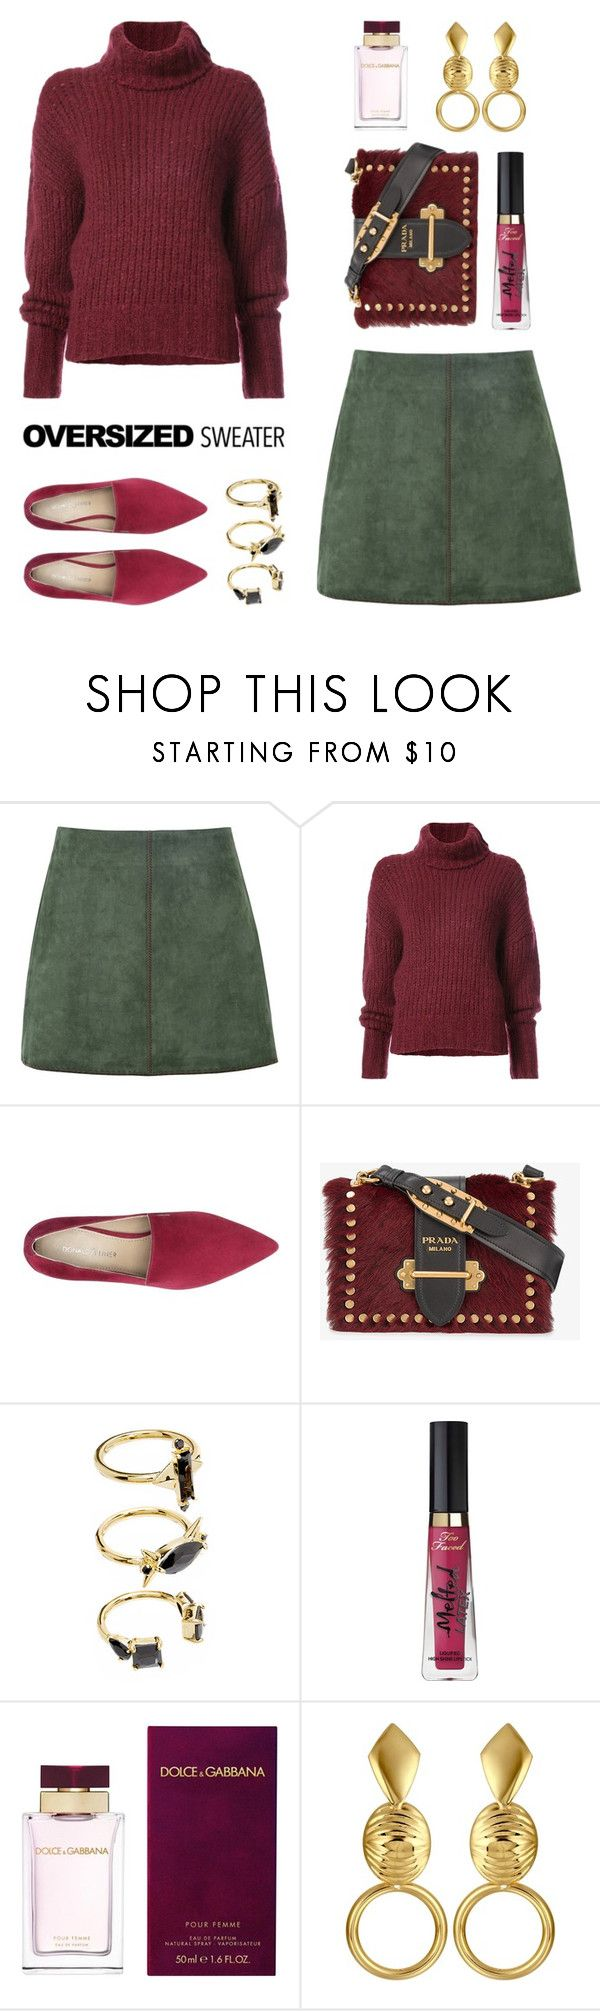 """Oversized Sweater"" by stavrolga on Polyvore featuring George J. Love, BY. Bonnie Young, Donald J Pliner, Prada, Noir Jewelry, Too Faced Cosmetics and Dolce&Gabbana"